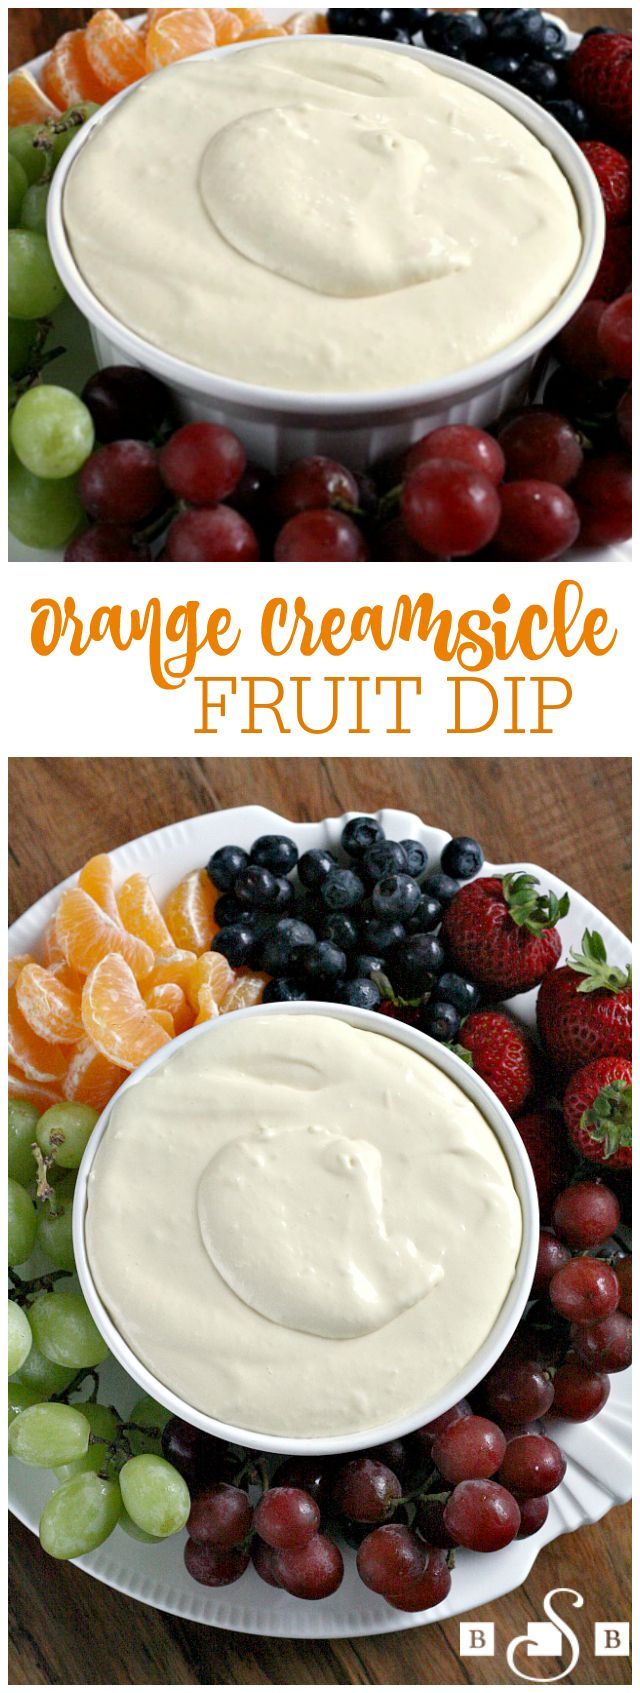 Orange Creamsicle Fruit Dip - Butter With a Side of Bread-- a super simple recipe with just 3 ingredients! Everyone goes crazy over this sweet fruit dip- perfect for any get together.